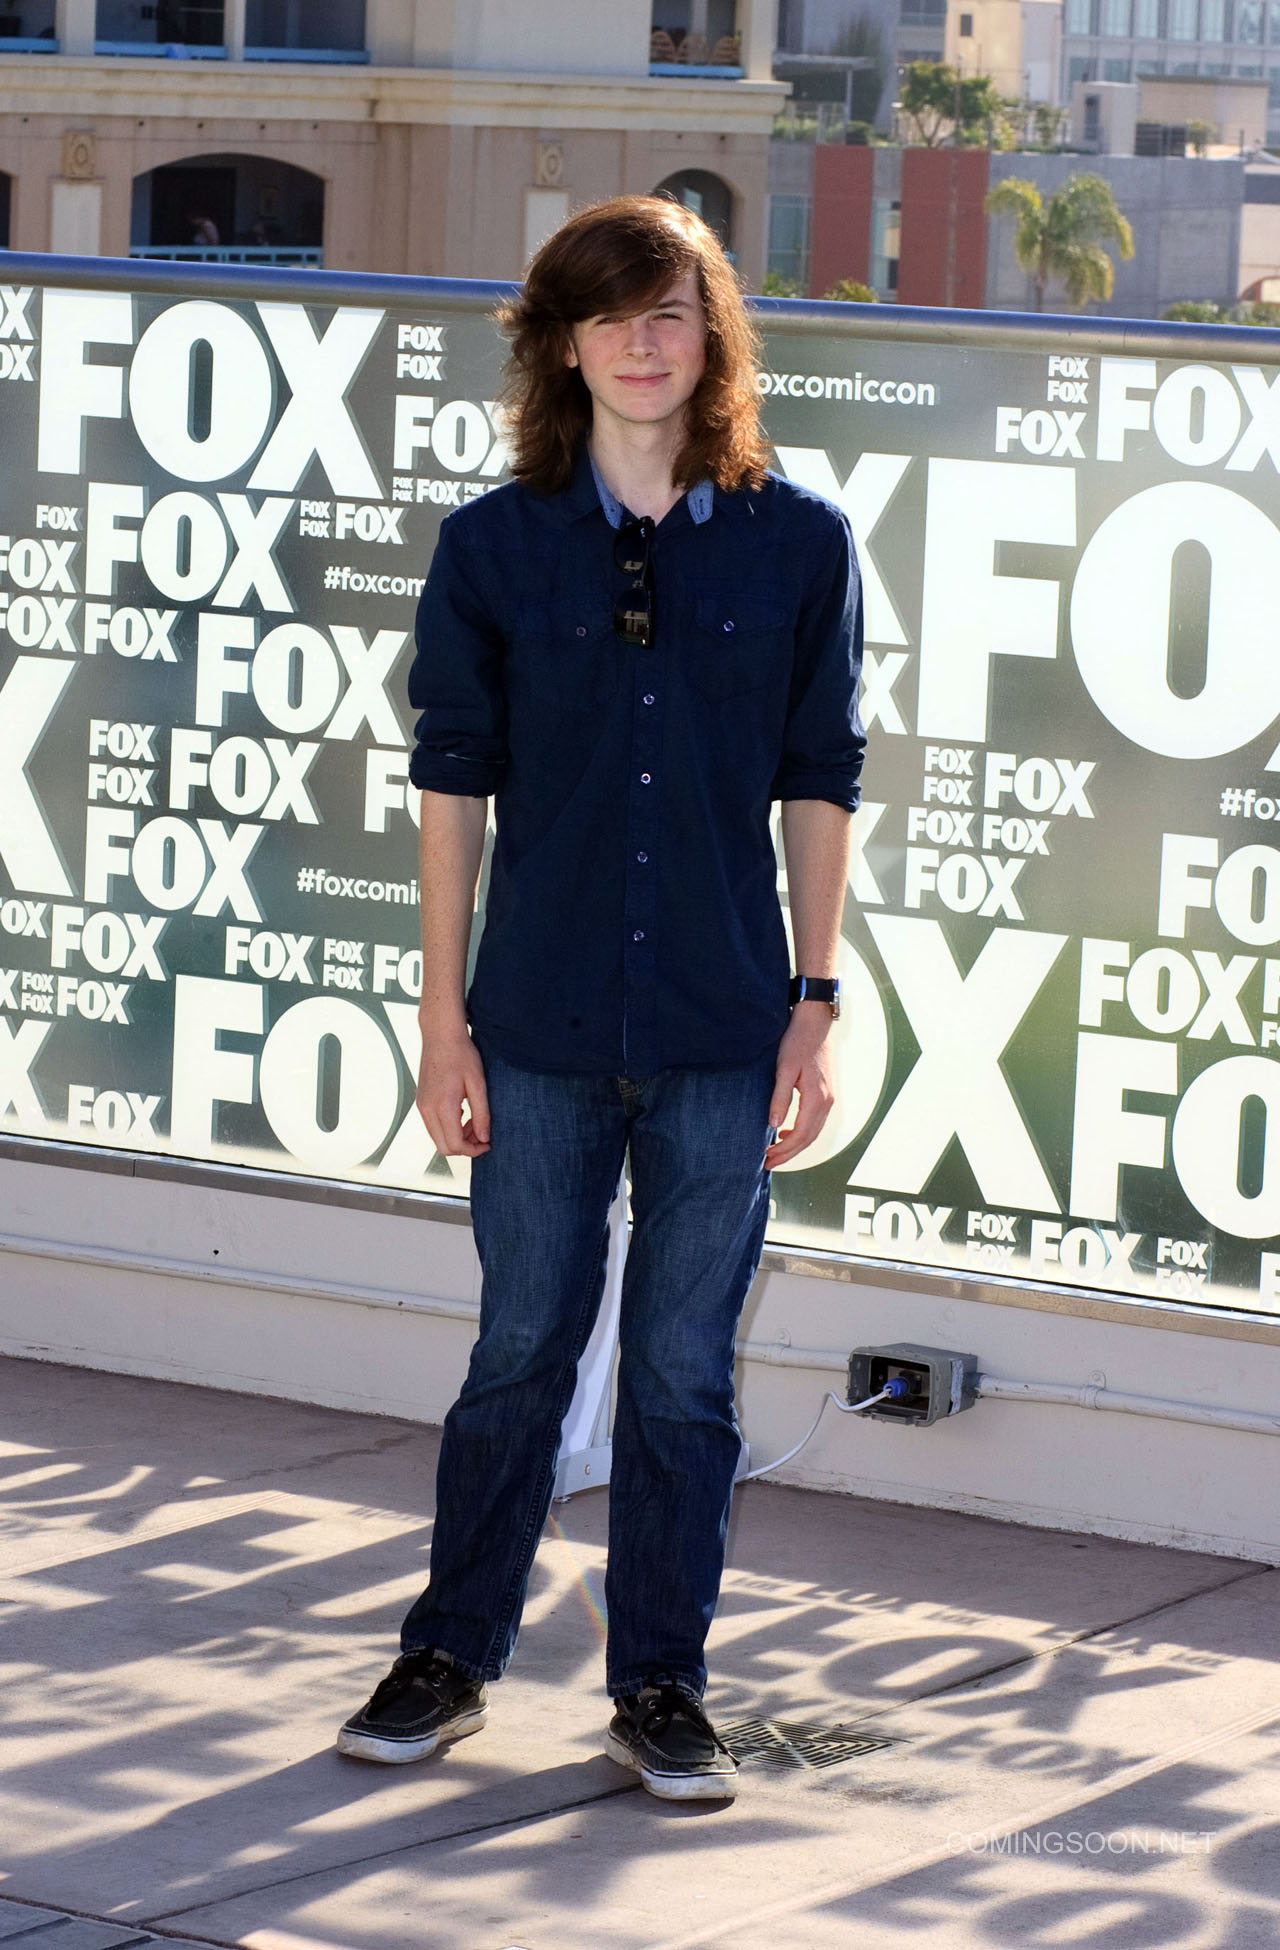 Fox Comic Con breakfast with the cast of Walking Dead and Outcast Featuring: Chandler Riggs Where: San Diego, California, United States When: 22 Jul 2016 Credit: Tony Forte/WENN